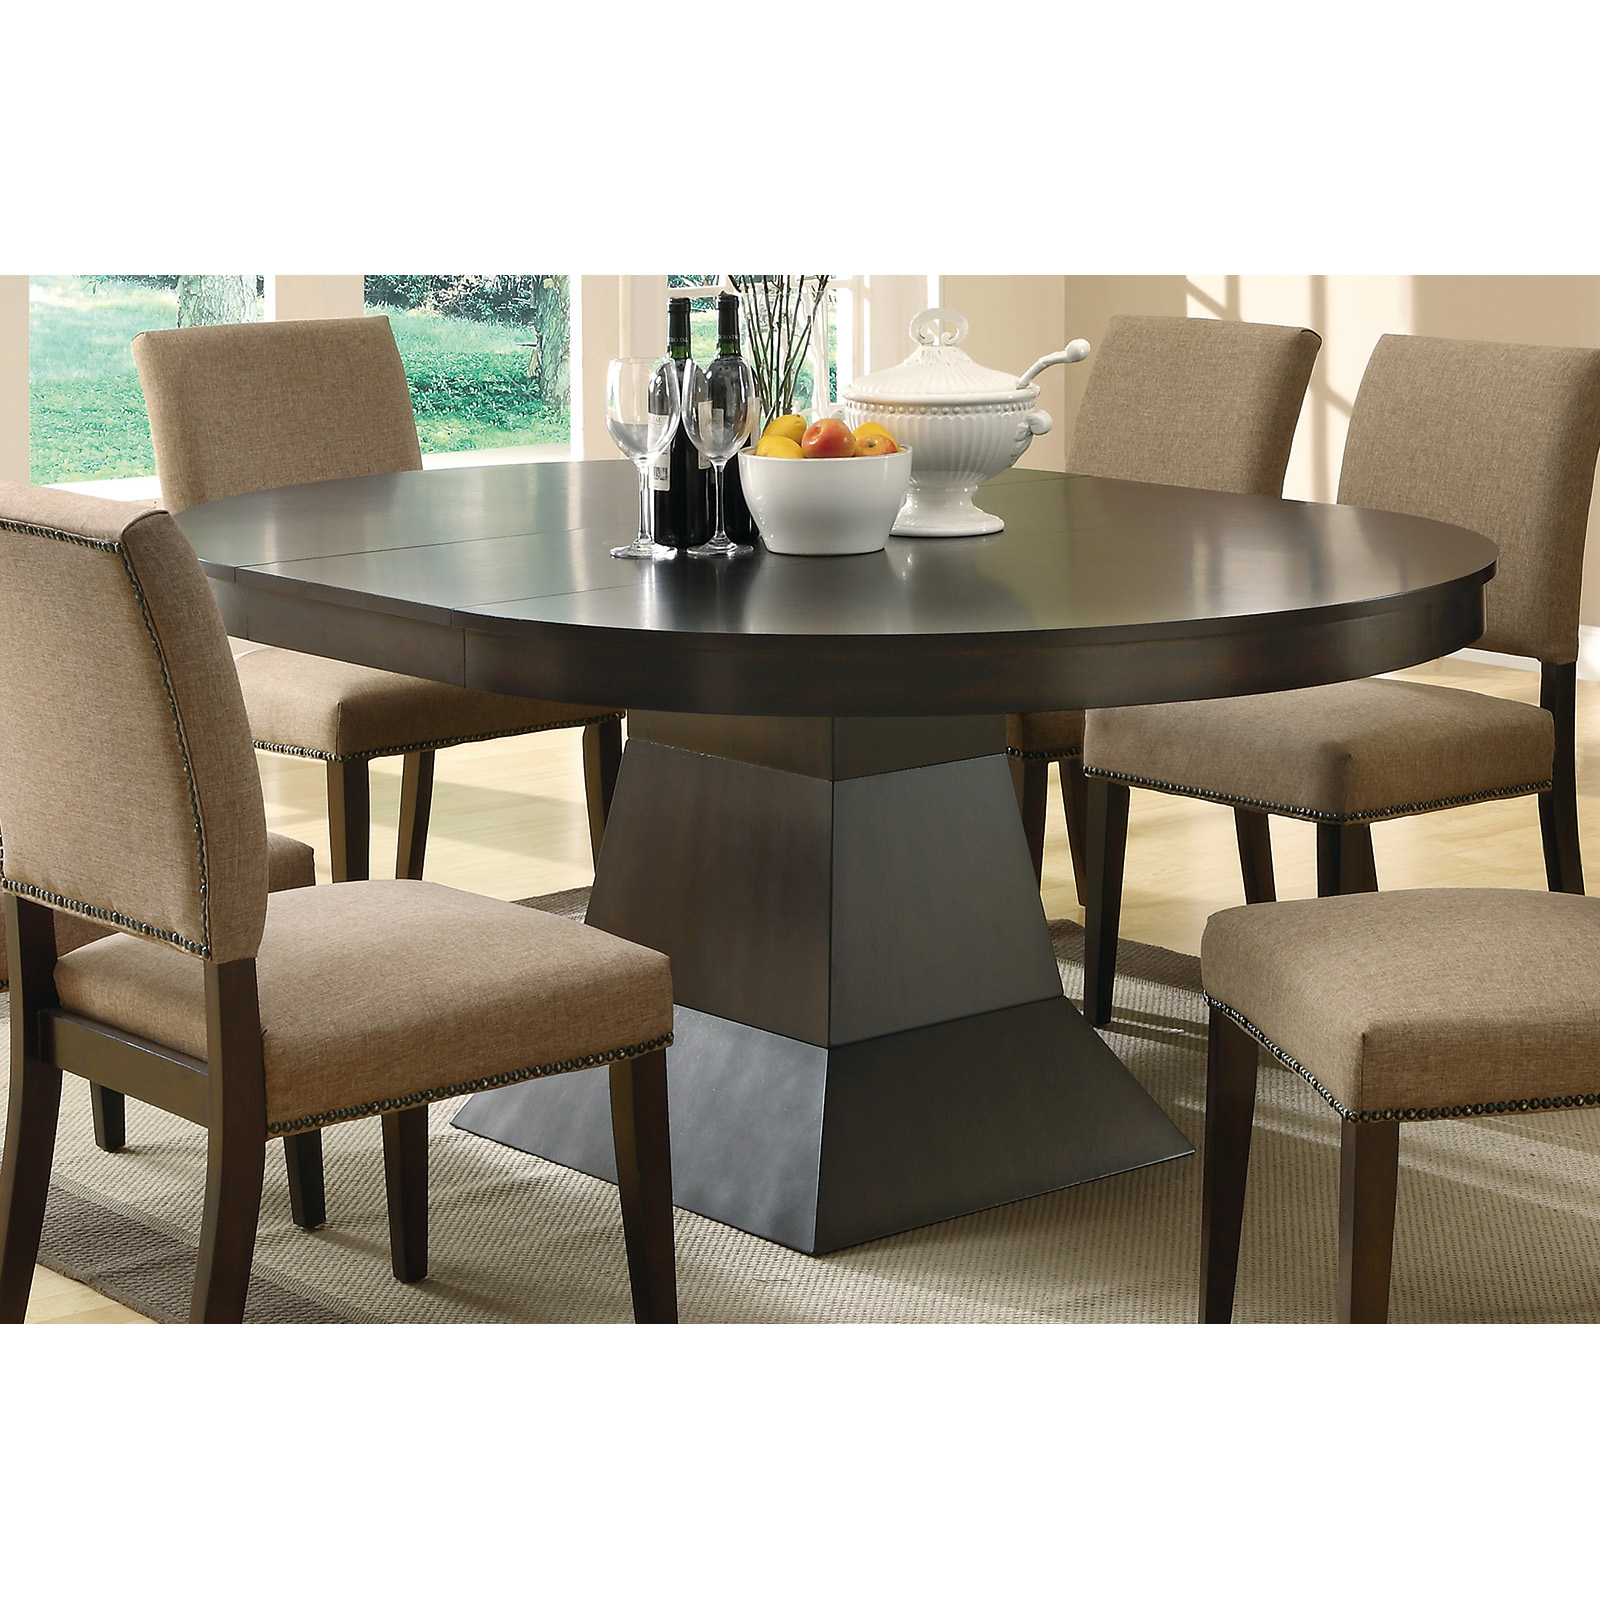 Superieur Coaster Furniture Myrtle Dining Table With Extension